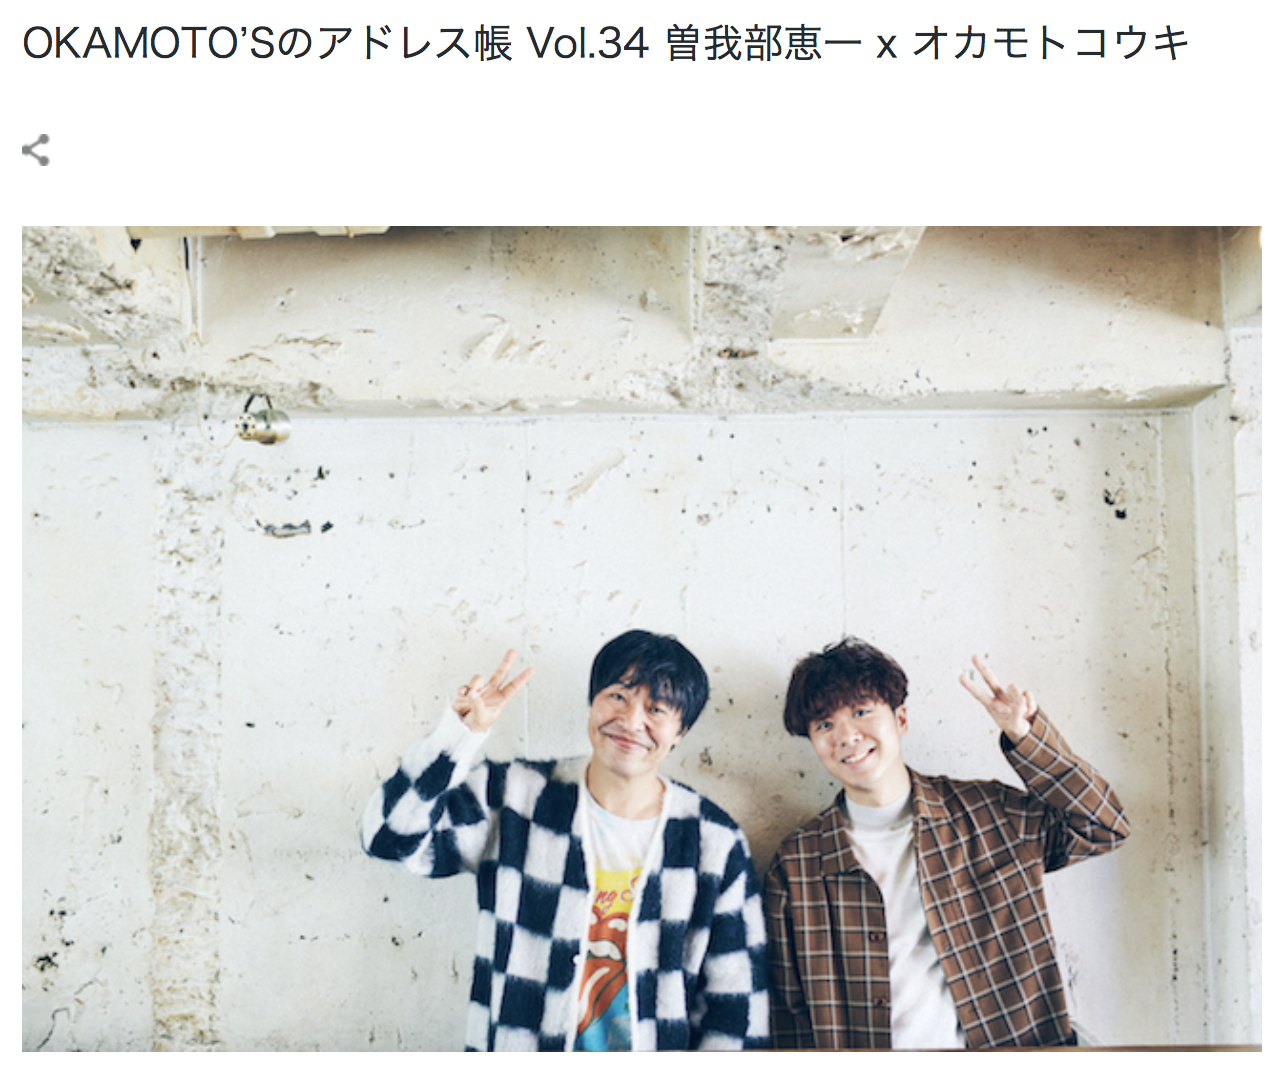 http://rose-records.jp/files/20191130175859.png